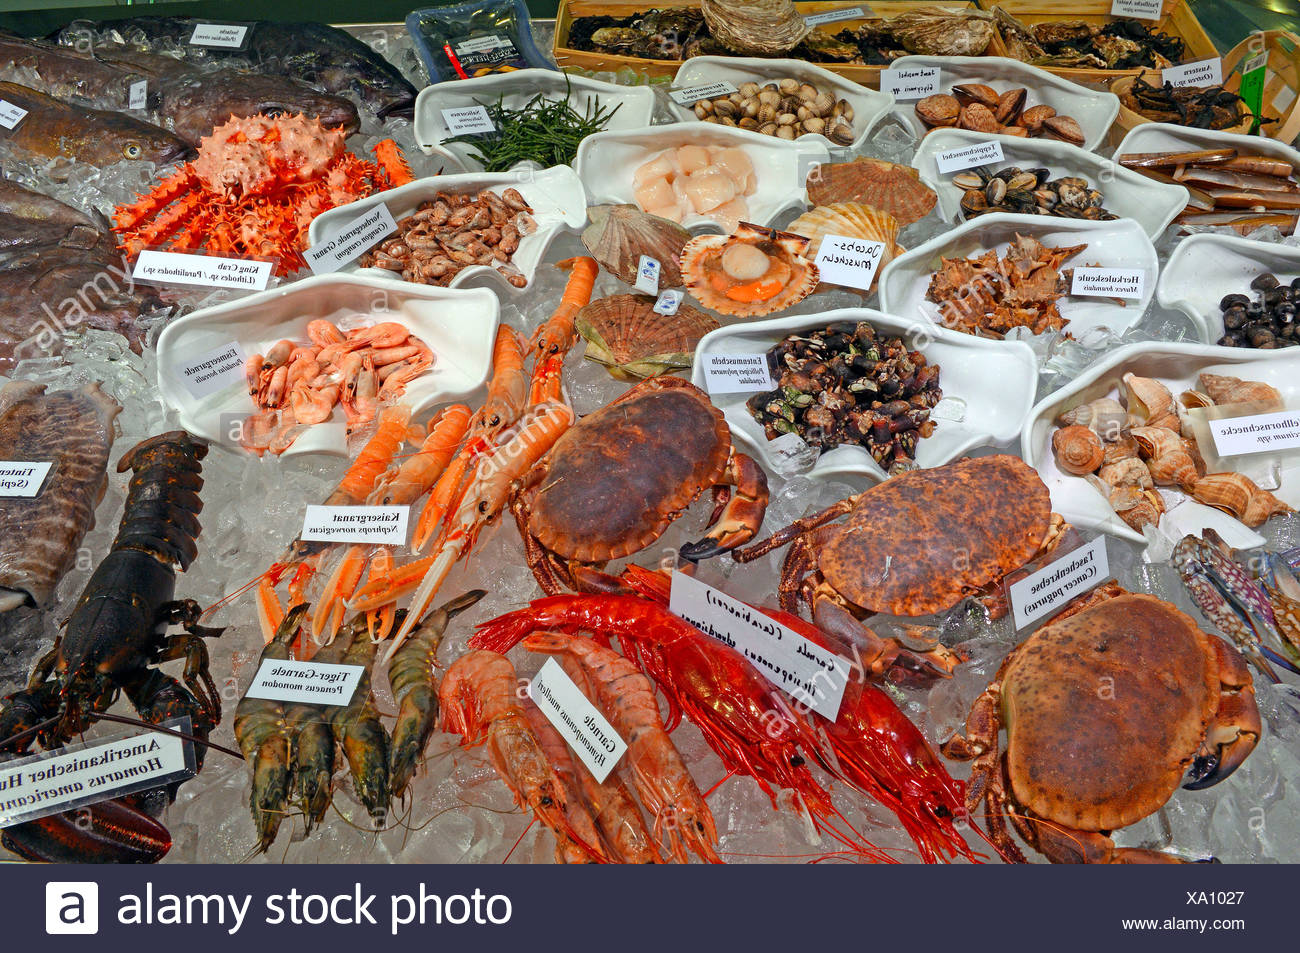 Several kind of exotic seafood, Lobster, snails, crabs - Stock Image